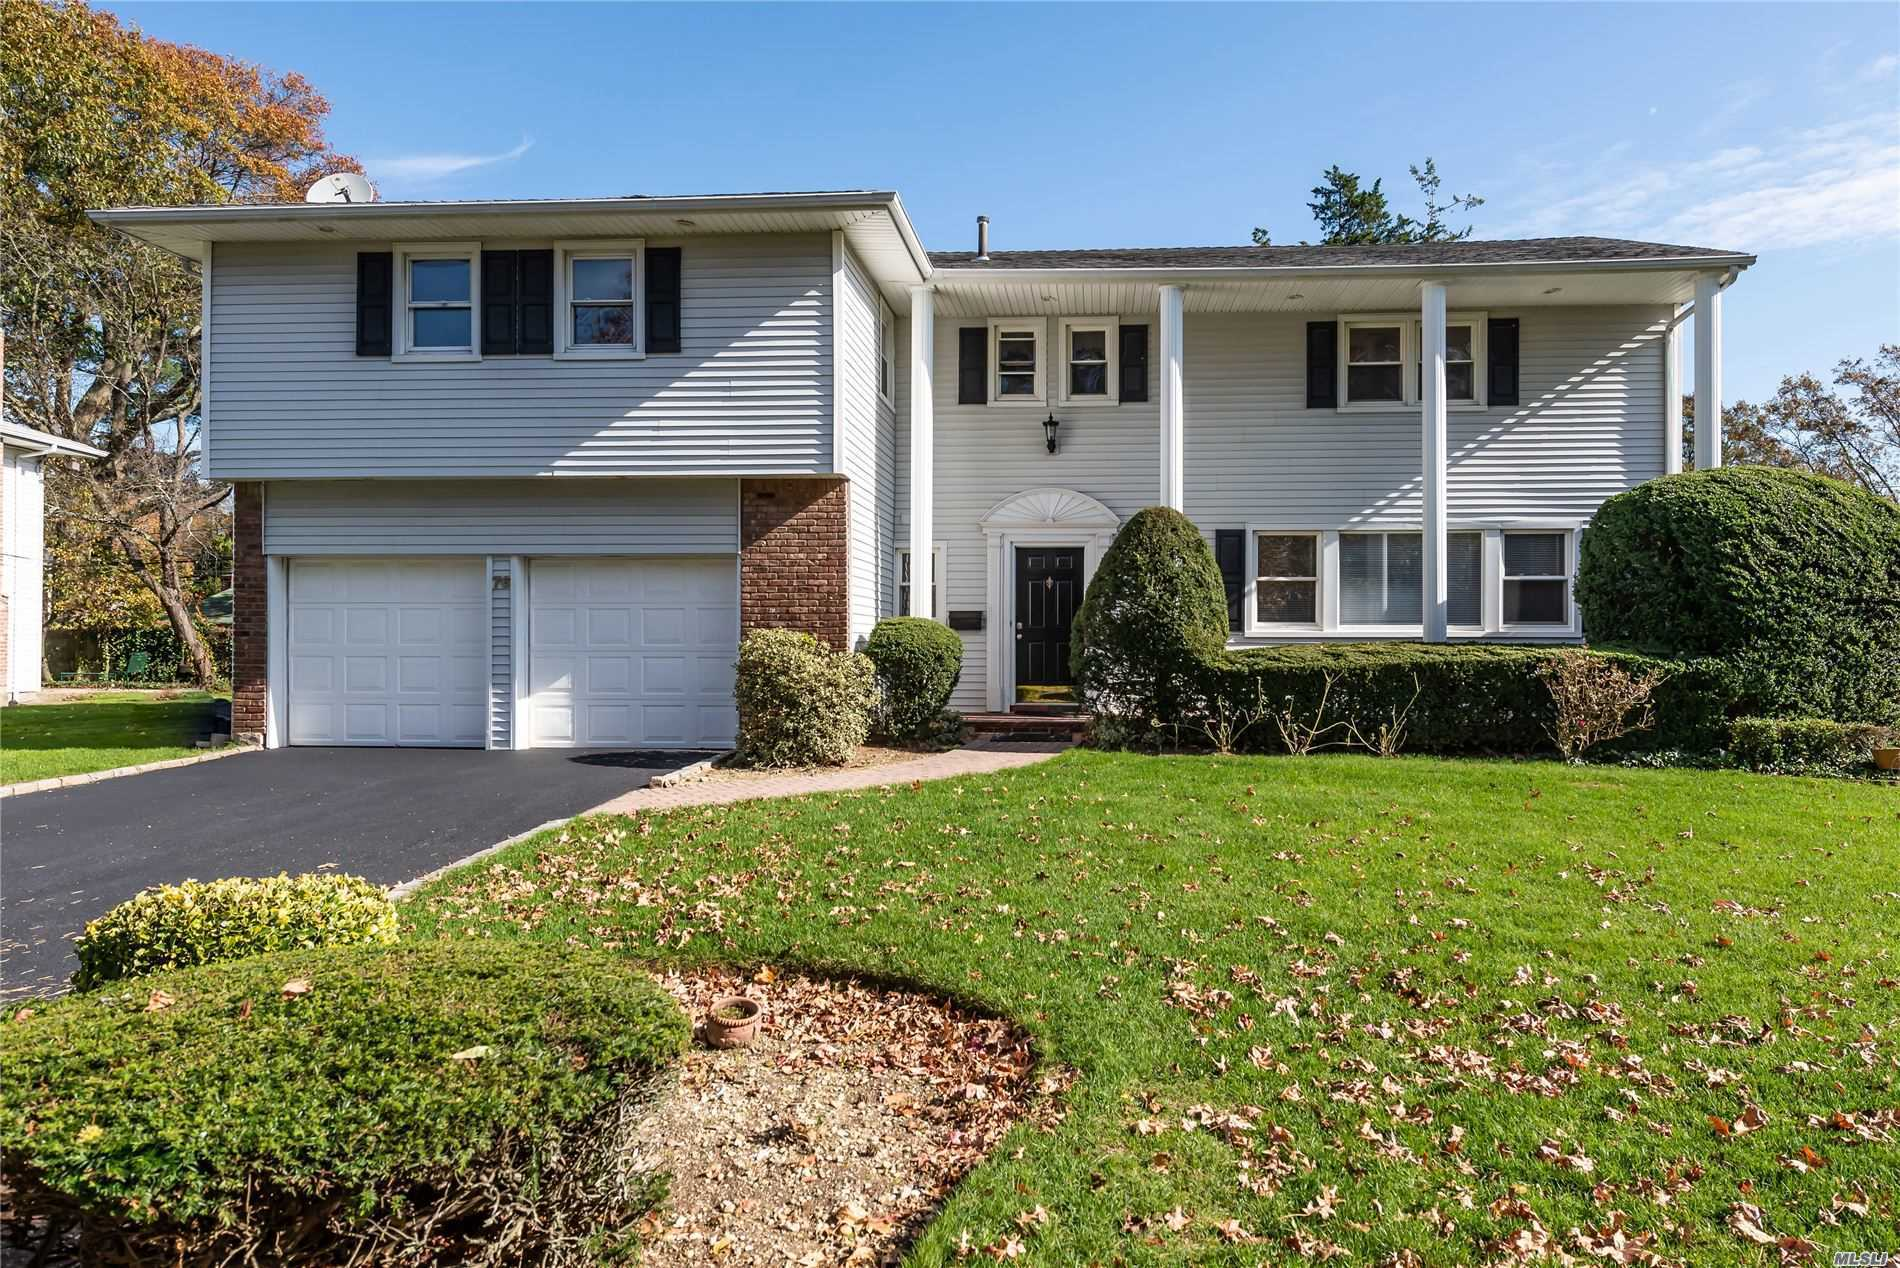 76 Birch Hl - Searingtown, New York